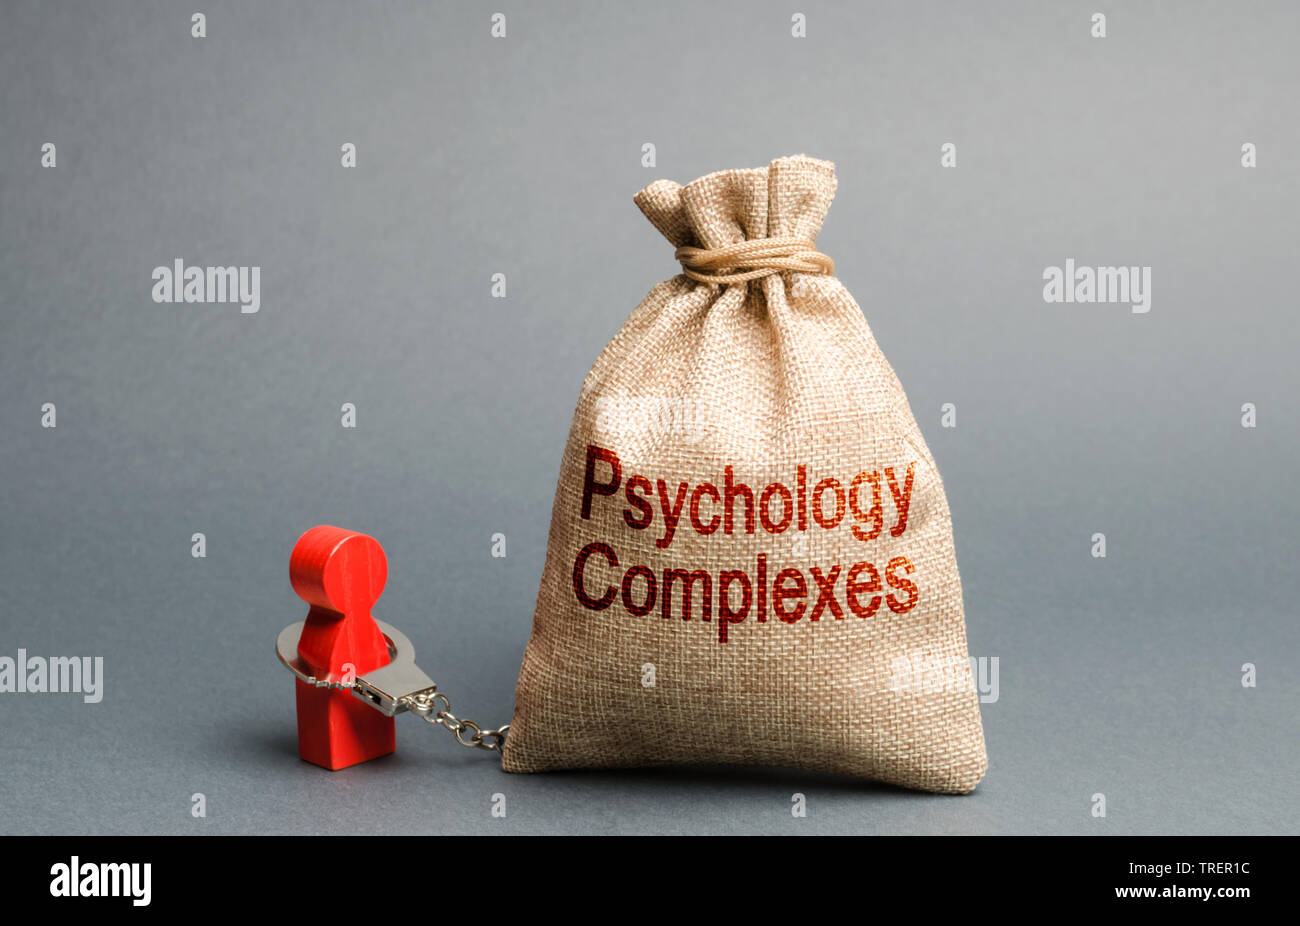 A person is handcuffed with a bag labeled psychological complexes. Feeling of inferiority and low self-esteem, low social skills, sociopathy and lack - Stock Image